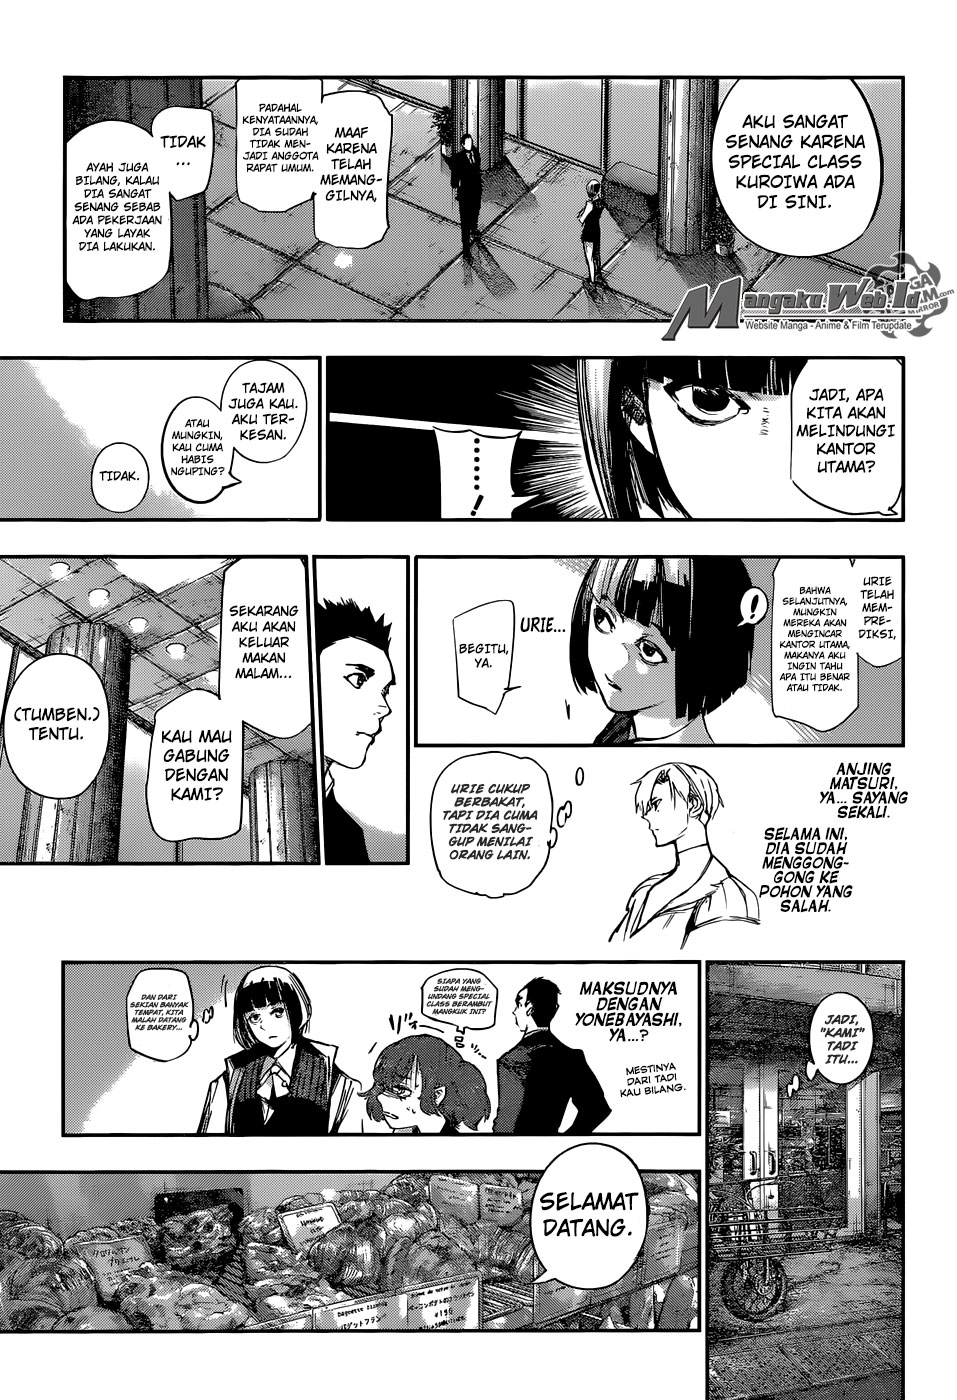 Tokyo Ghoul:re Chapter 103-17